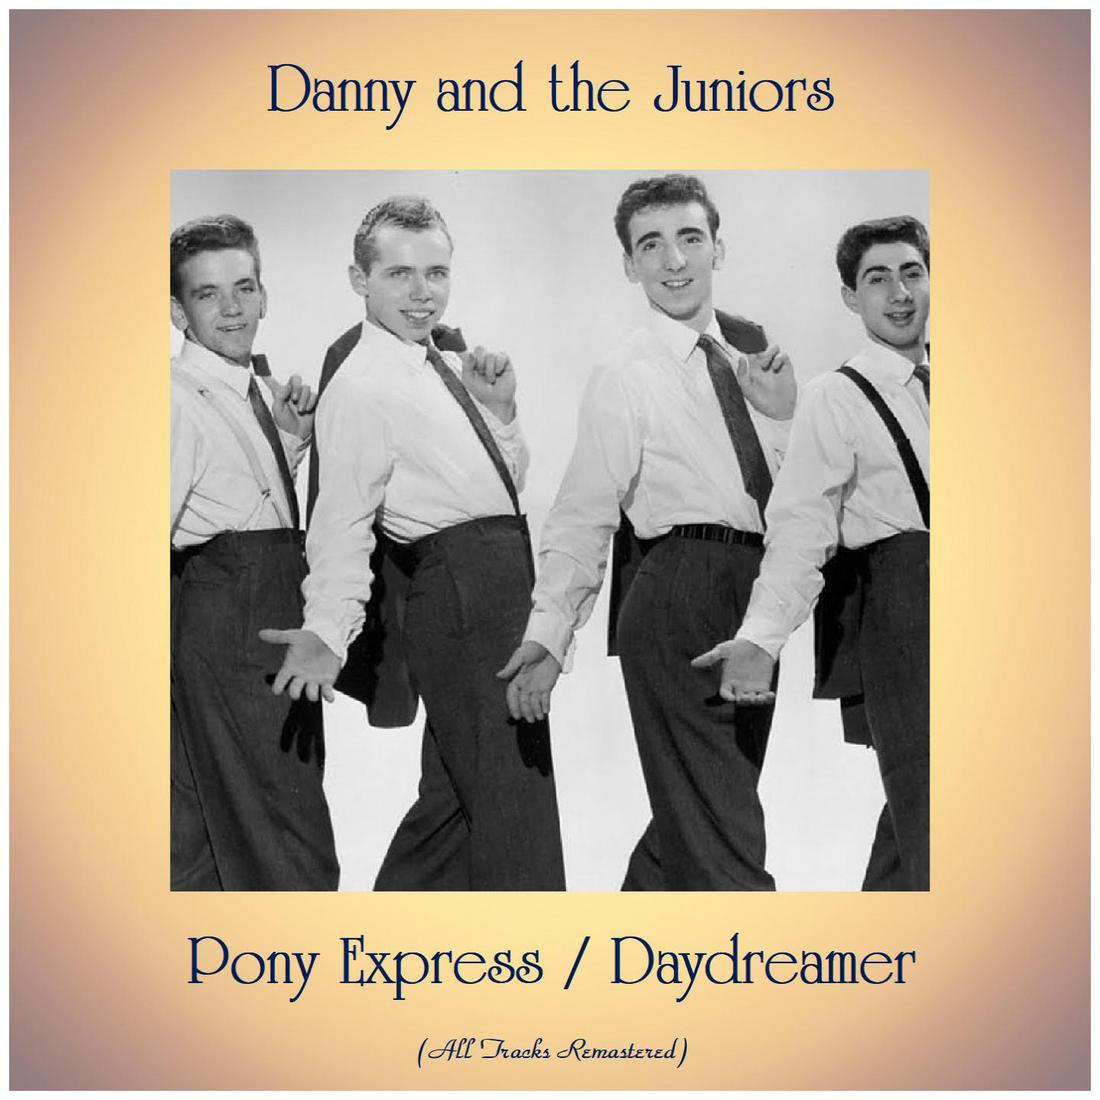 Pony Express / Daydreamer (Remastered 2019) - Danny And The Juniors - 专辑 - 网